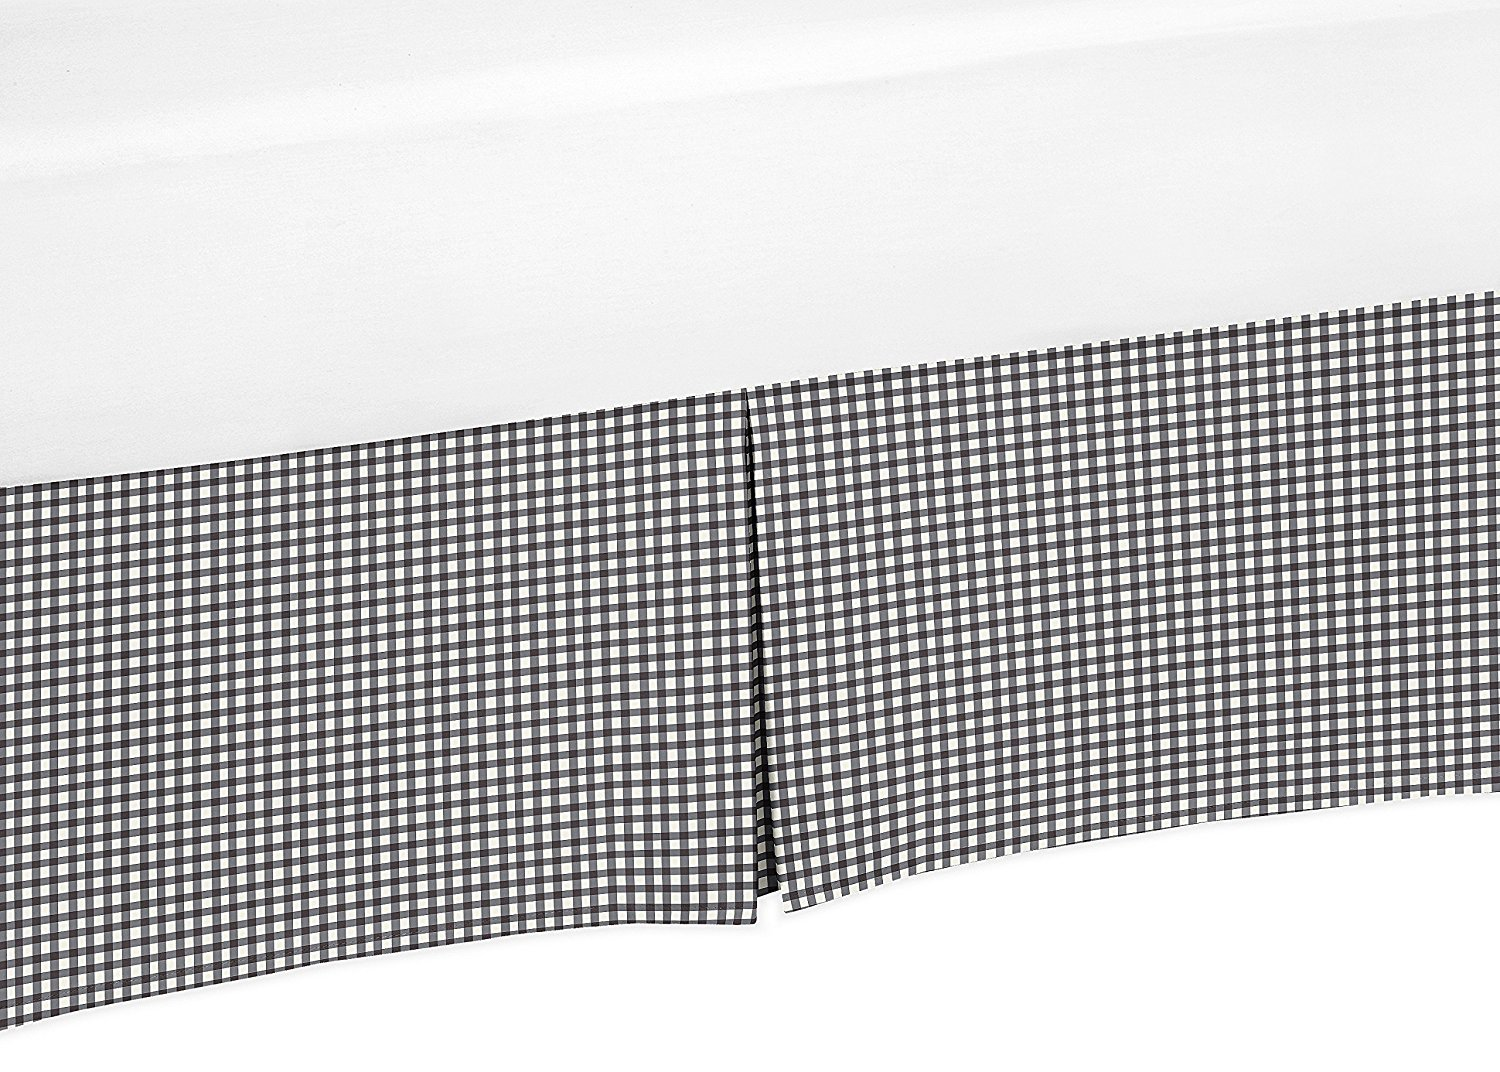 Black and White Gingham Crib Bedskirt Dust Ruffle for Girls Little Ladybug Collection Baby Bedding Sets by Sweet Jojo Designs